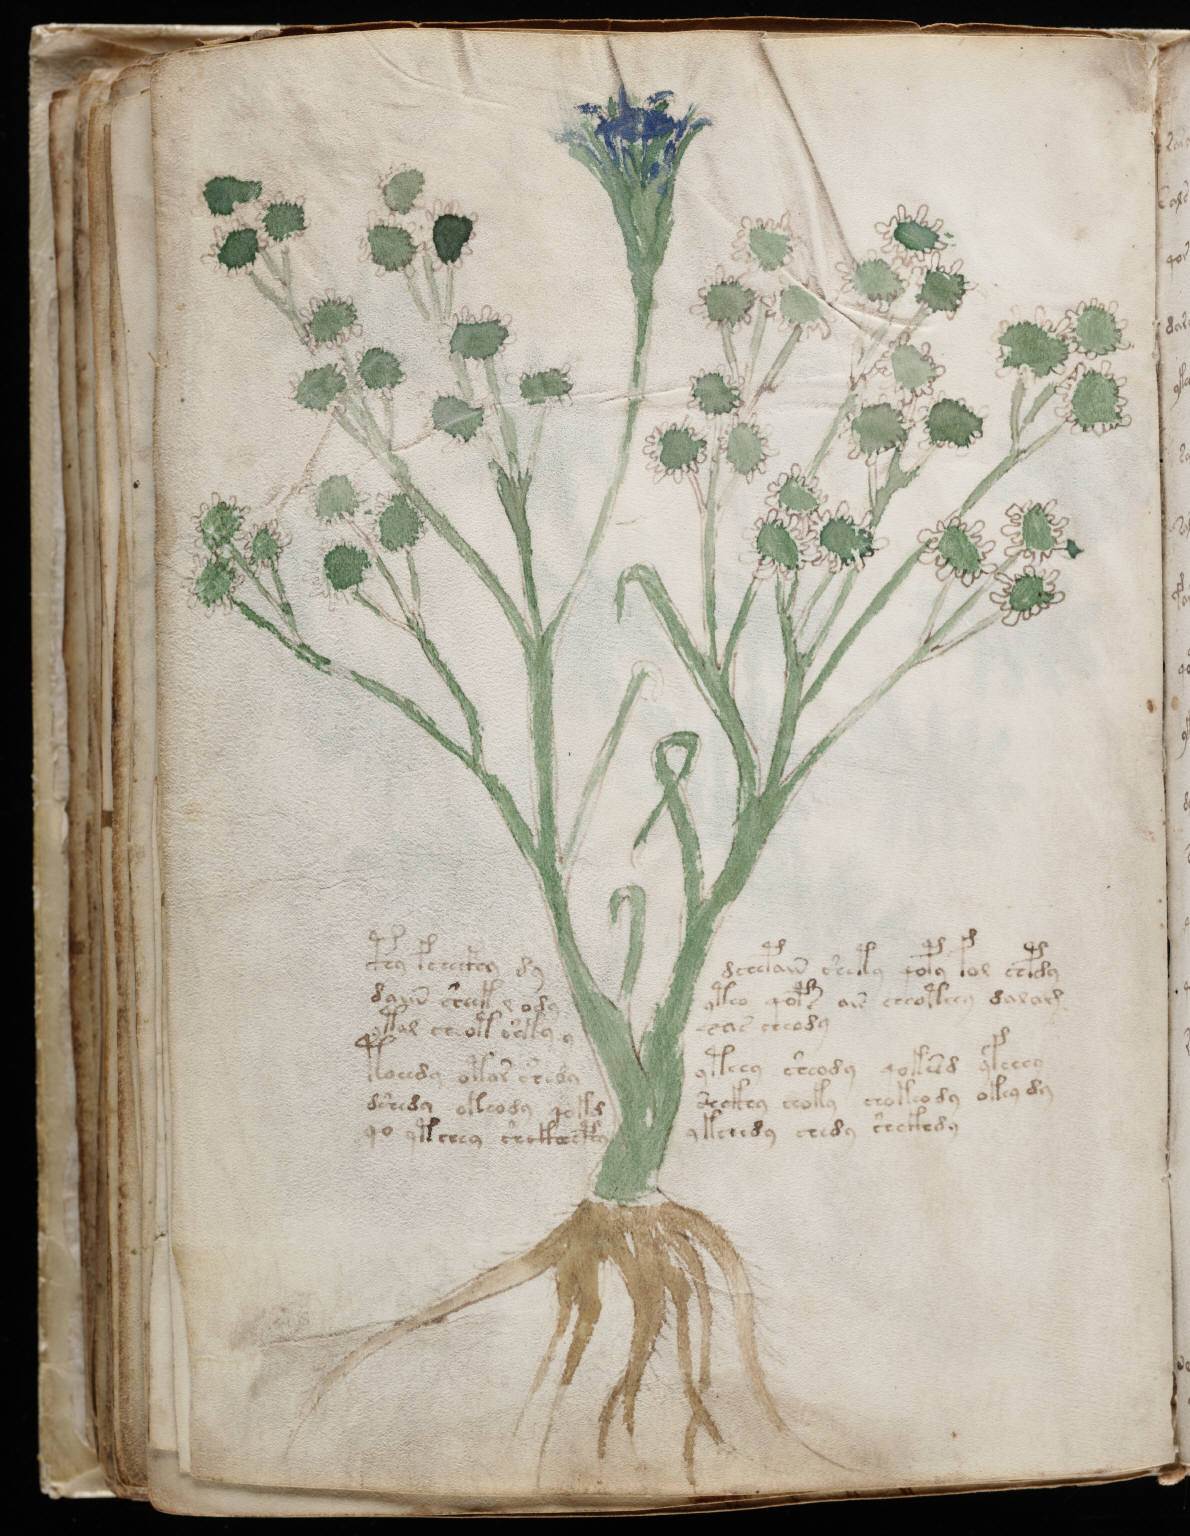 http://upload.wikimedia.org/wikipedia/commons/e/e0/Voynich_Manuscript_%28118%29.jpg